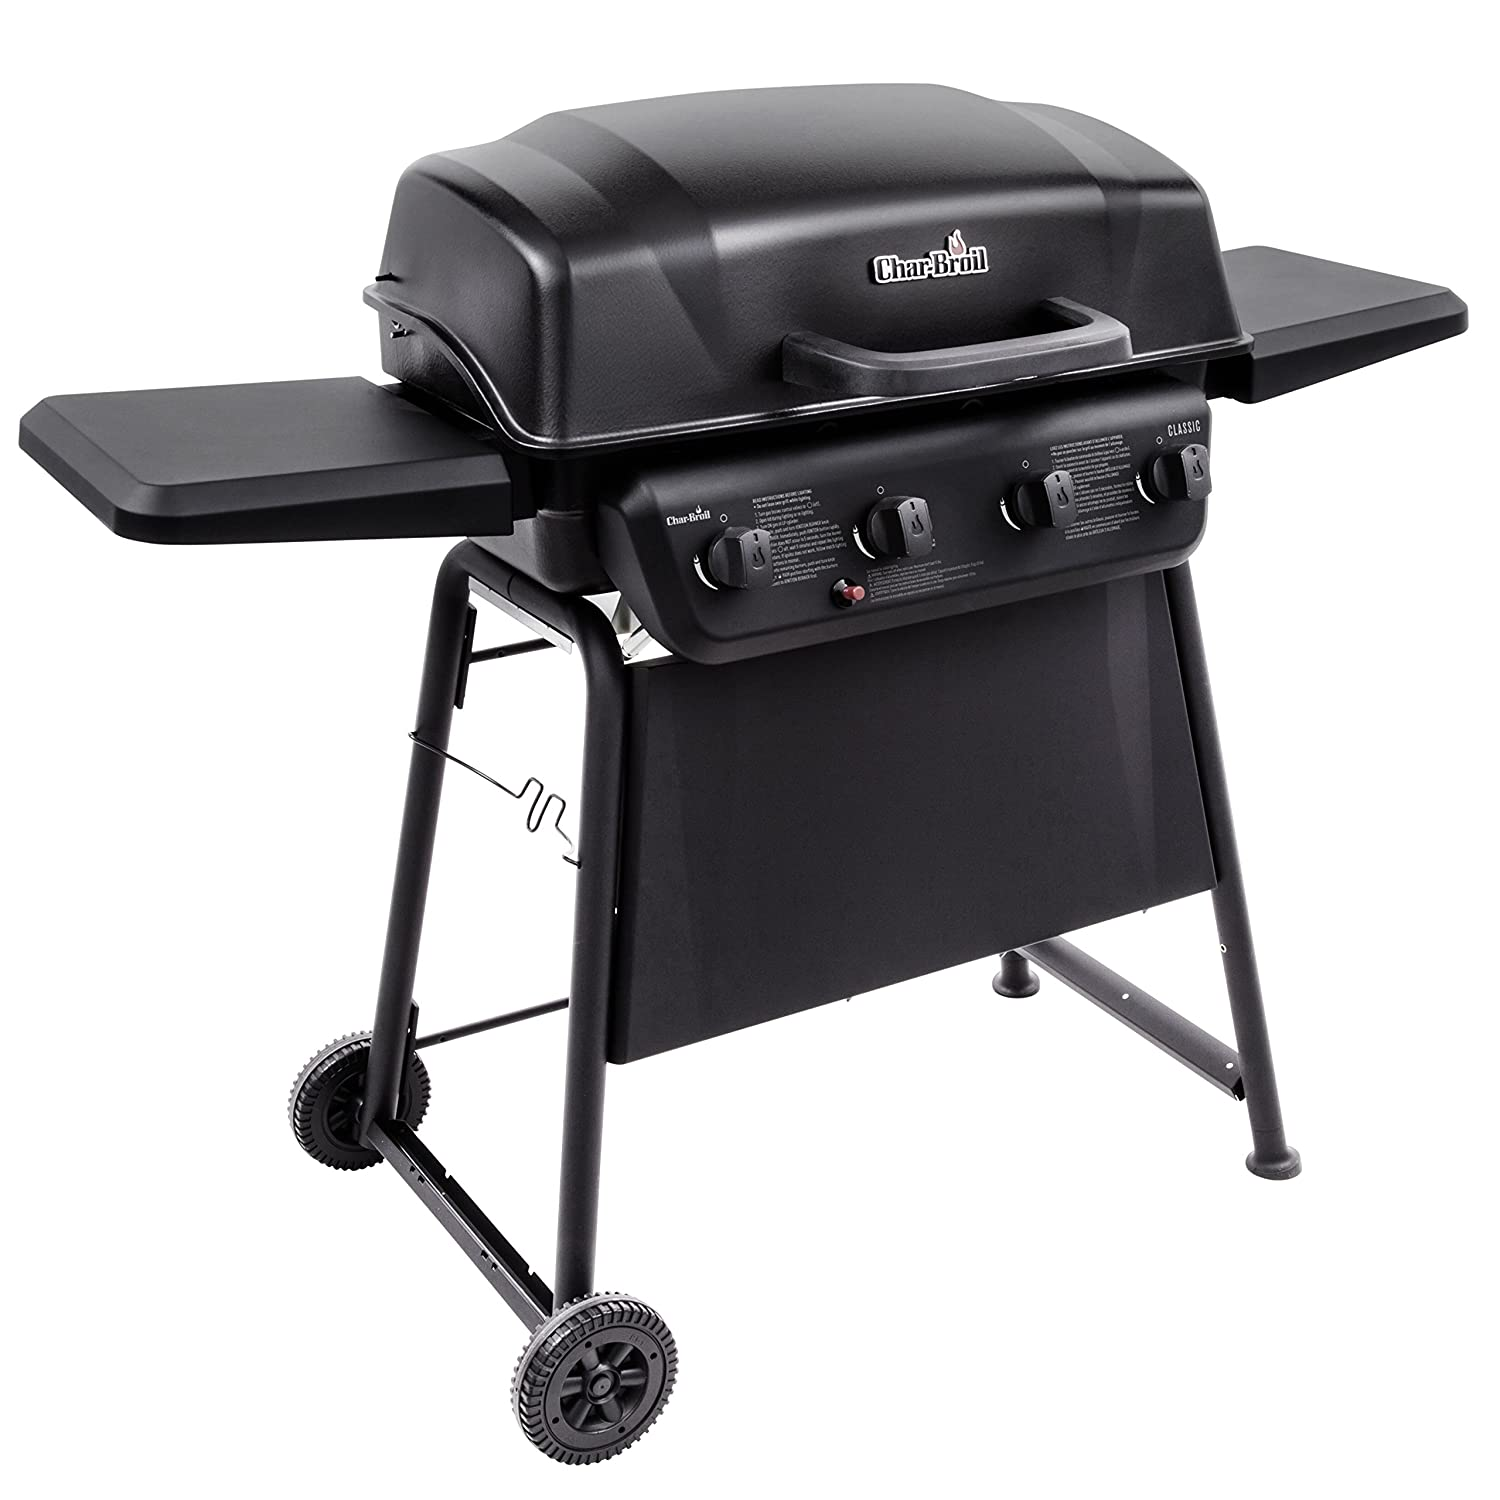 amazon com char broil classic 405 4 burner gas grill garden